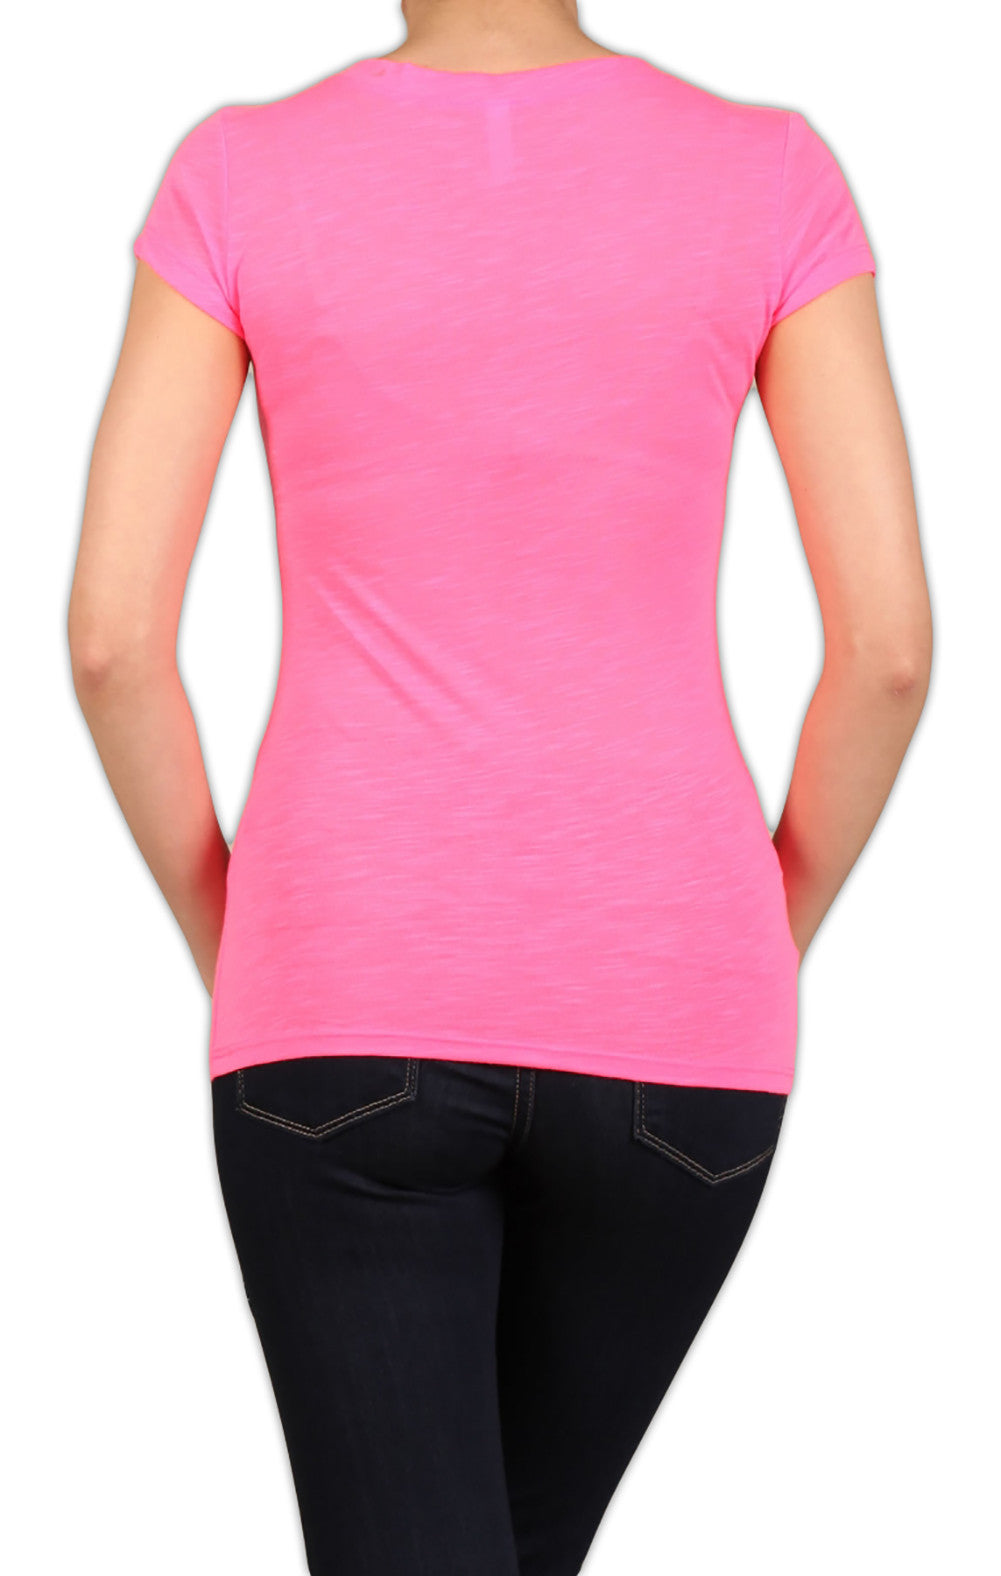 Neon Short Sleeve V-Neck Slub-Knit Women's T-Shirt - Neon Nation